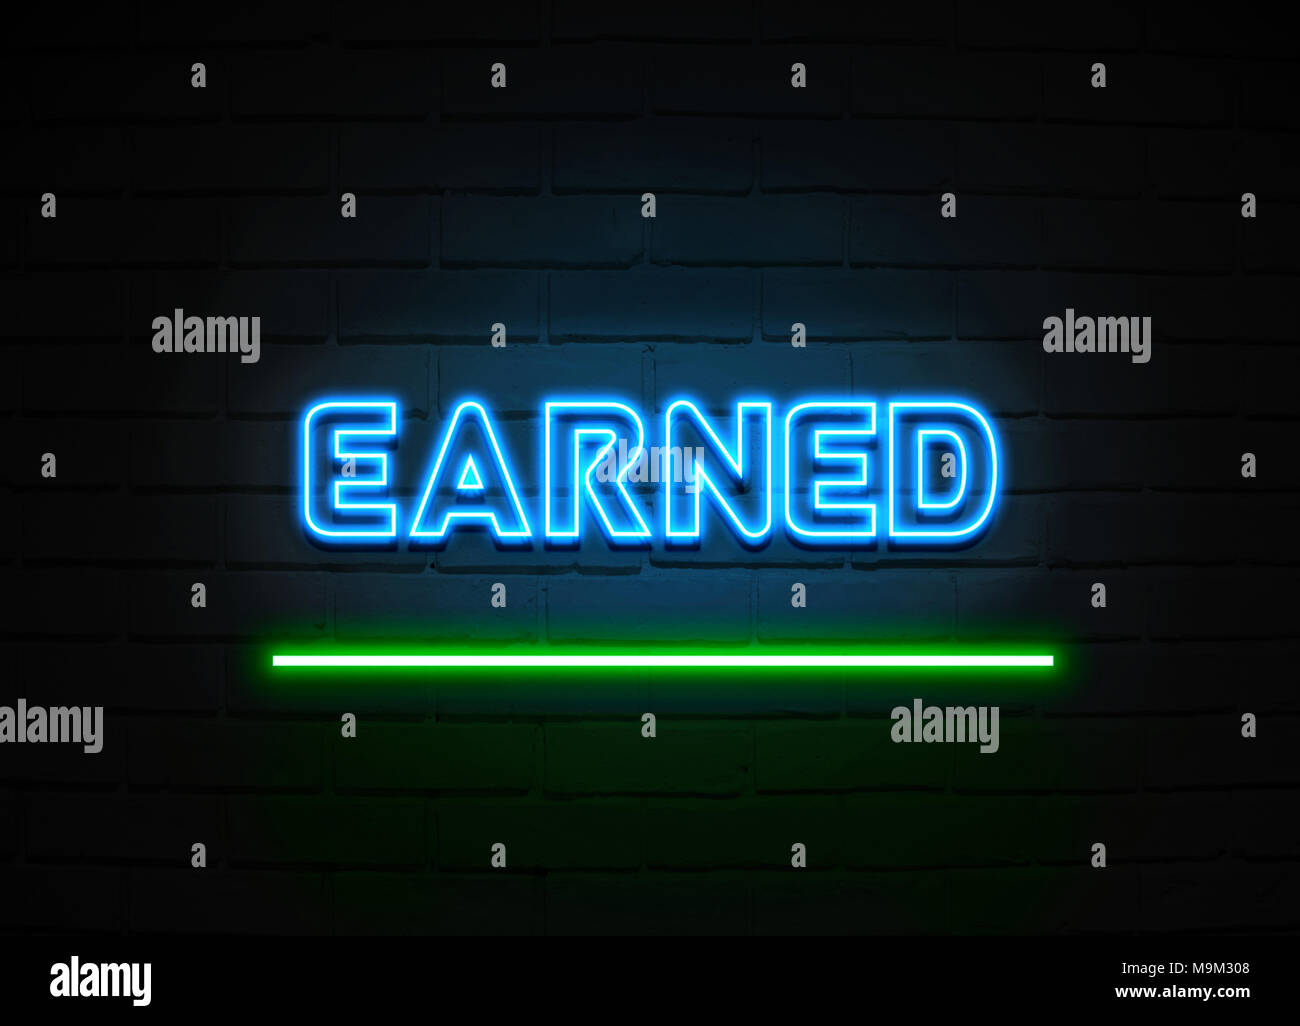 Earned neon sign - Glowing Neon Sign on brickwall wall - 3D rendered royalty free stock illustration. - Stock Image